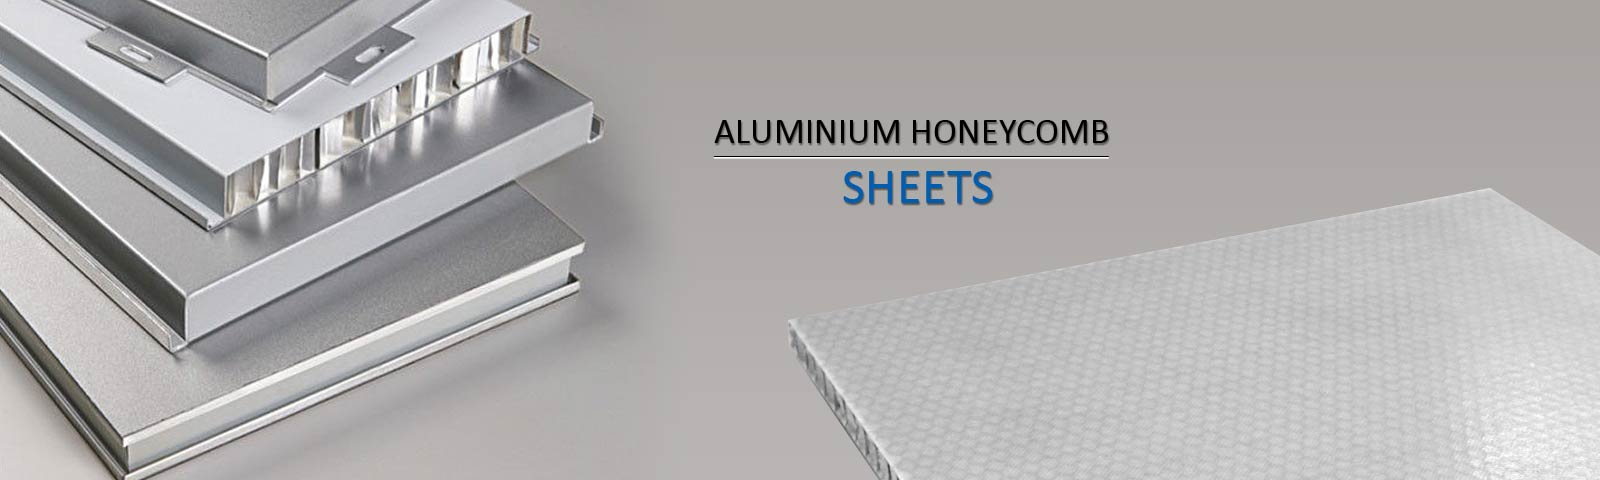 Aluminium Honeycom Sheets Manufacturer and Supplier in Australia